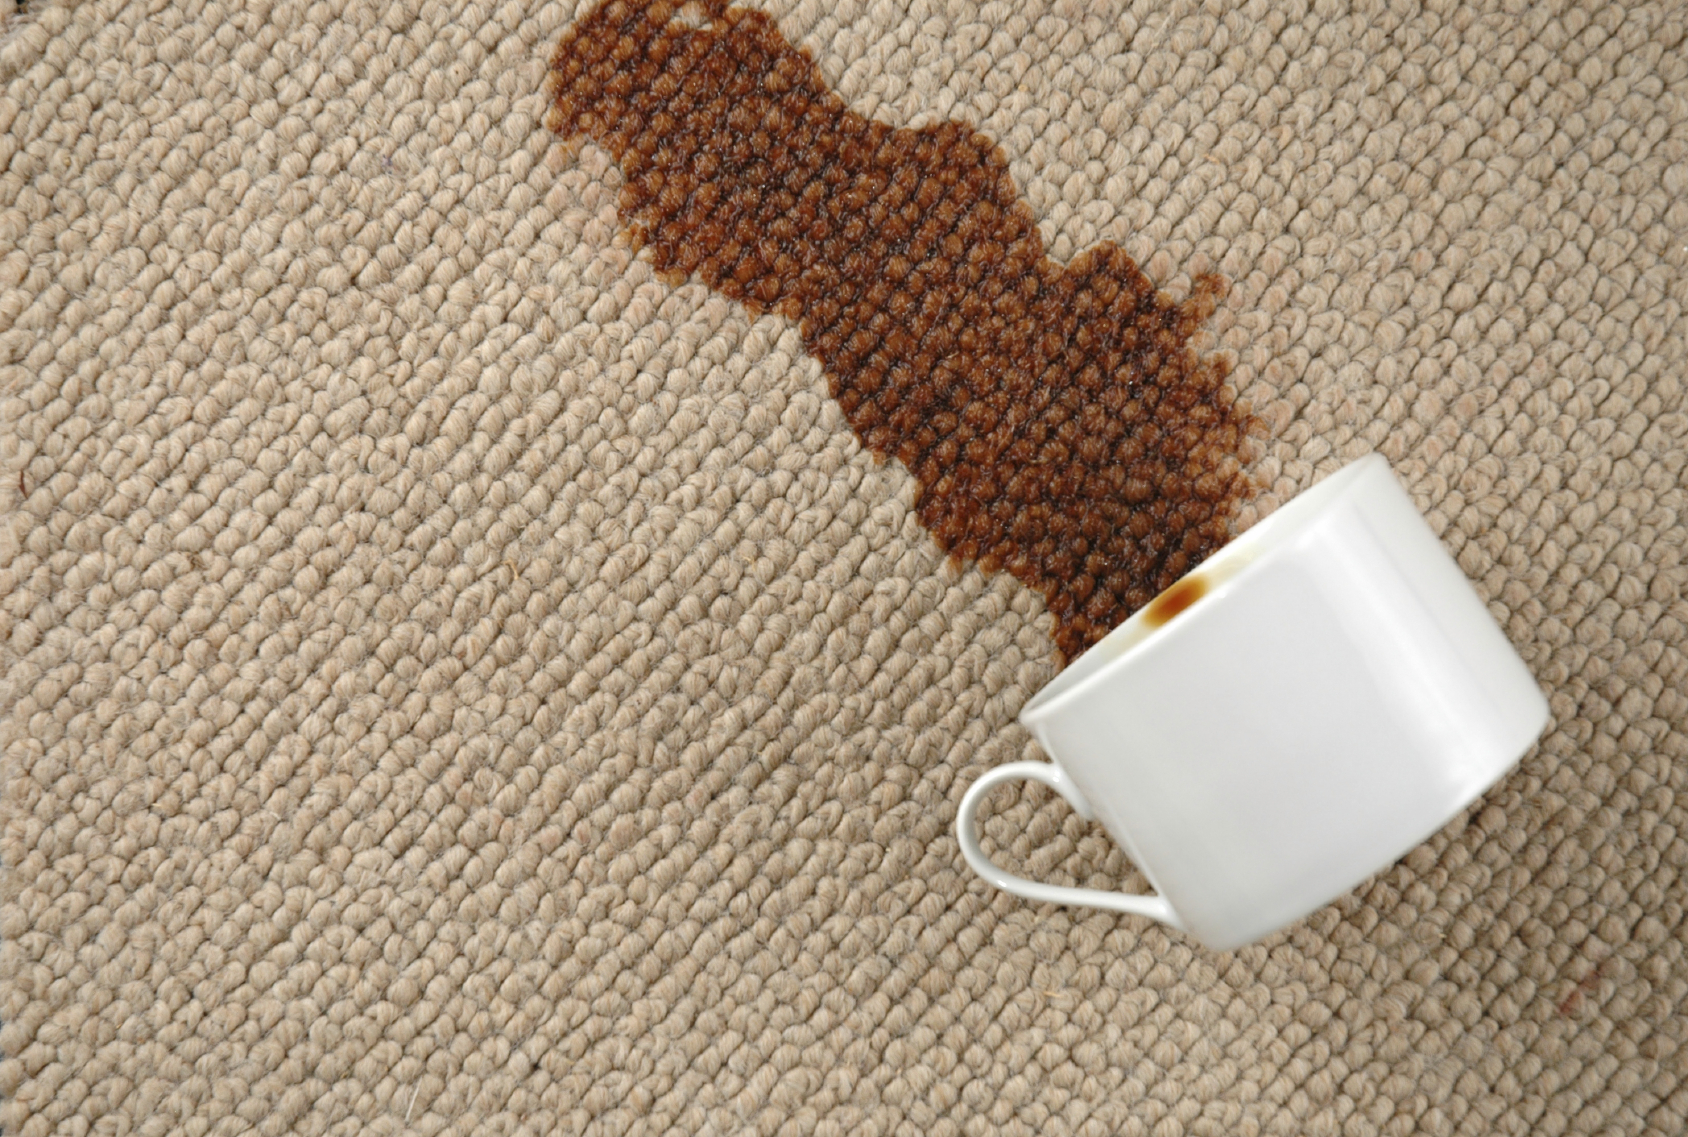 Commercial Carpet Cleaning Taylor Michigan Clean Up And